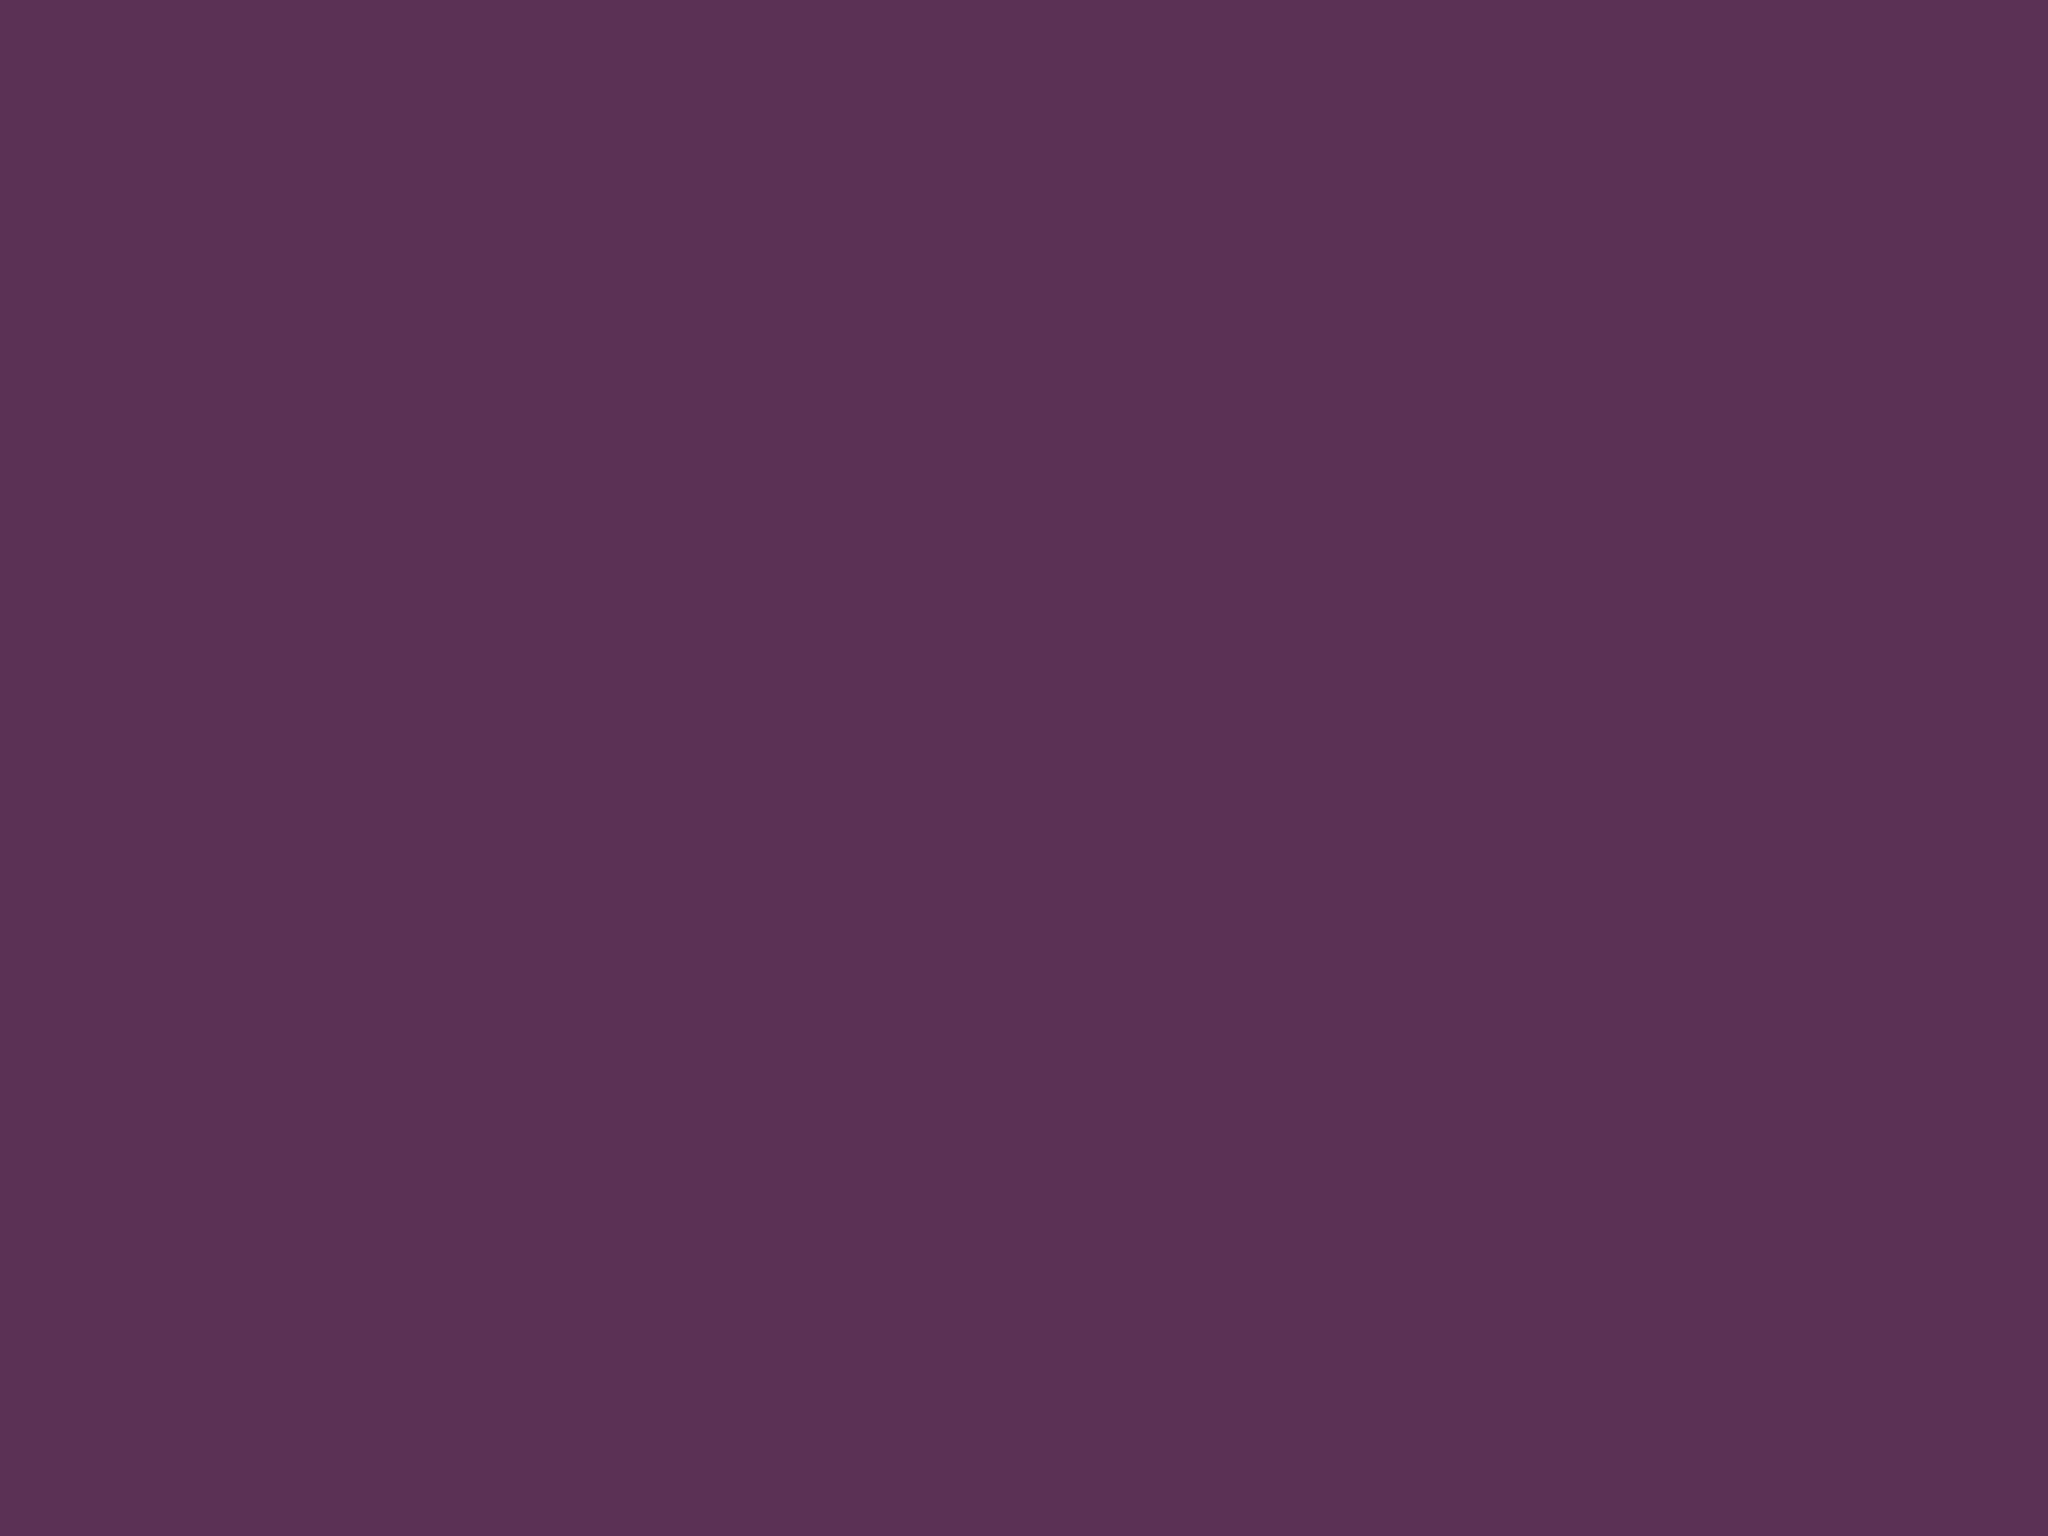 2048x1536 Japanese Violet Solid Color Background